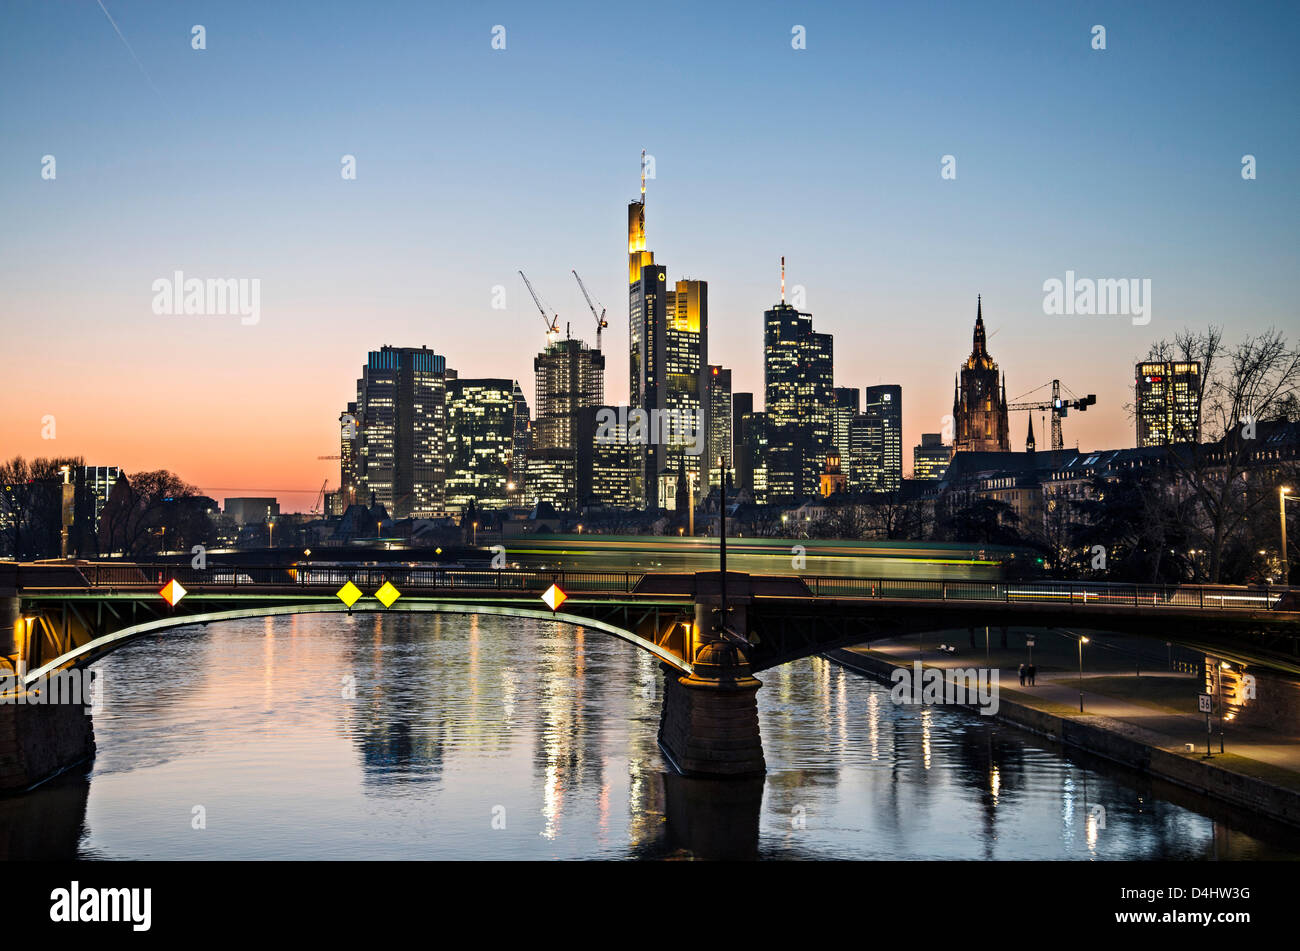 Frankfurt skyline at night with the river Main - Stock Image